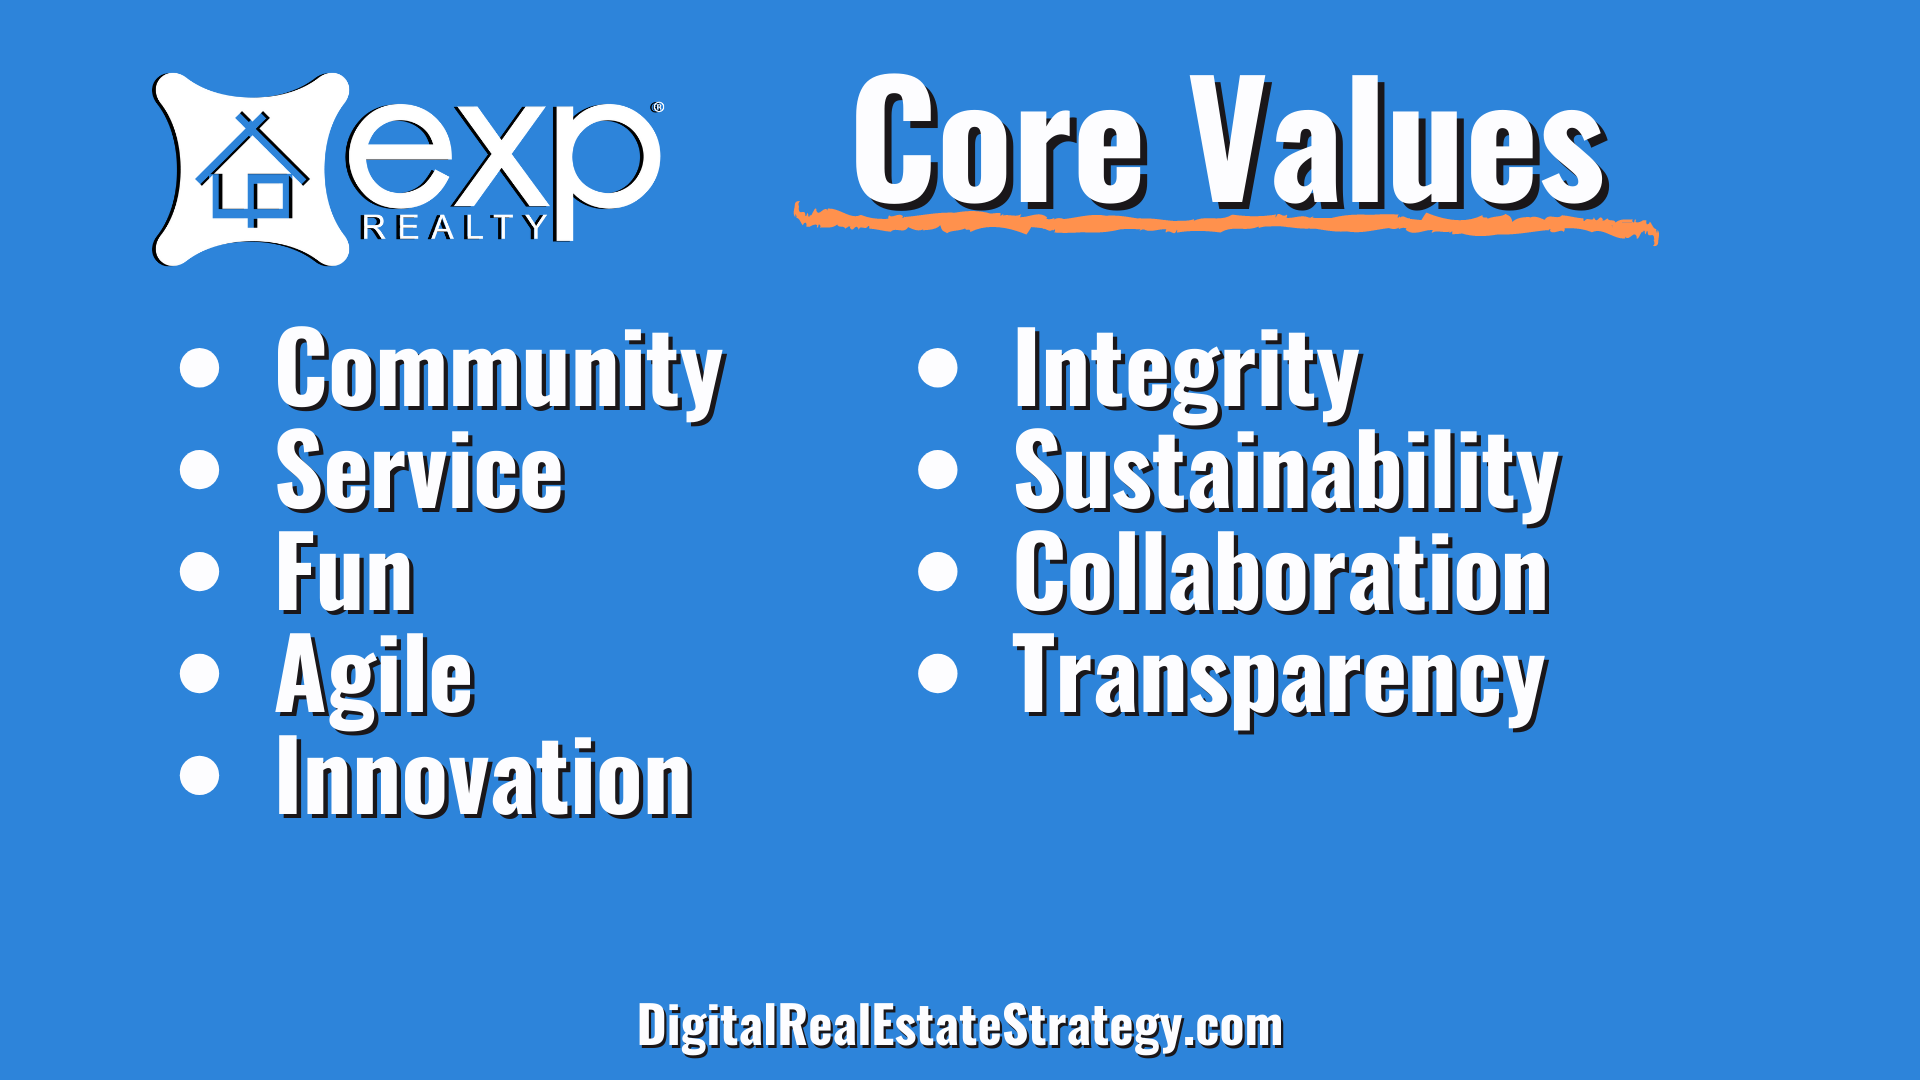 eXp Realty Review - eXp Core Values - Jerome Lewis - eXp Realty Philadelphia - Digital Real Estate Strategy